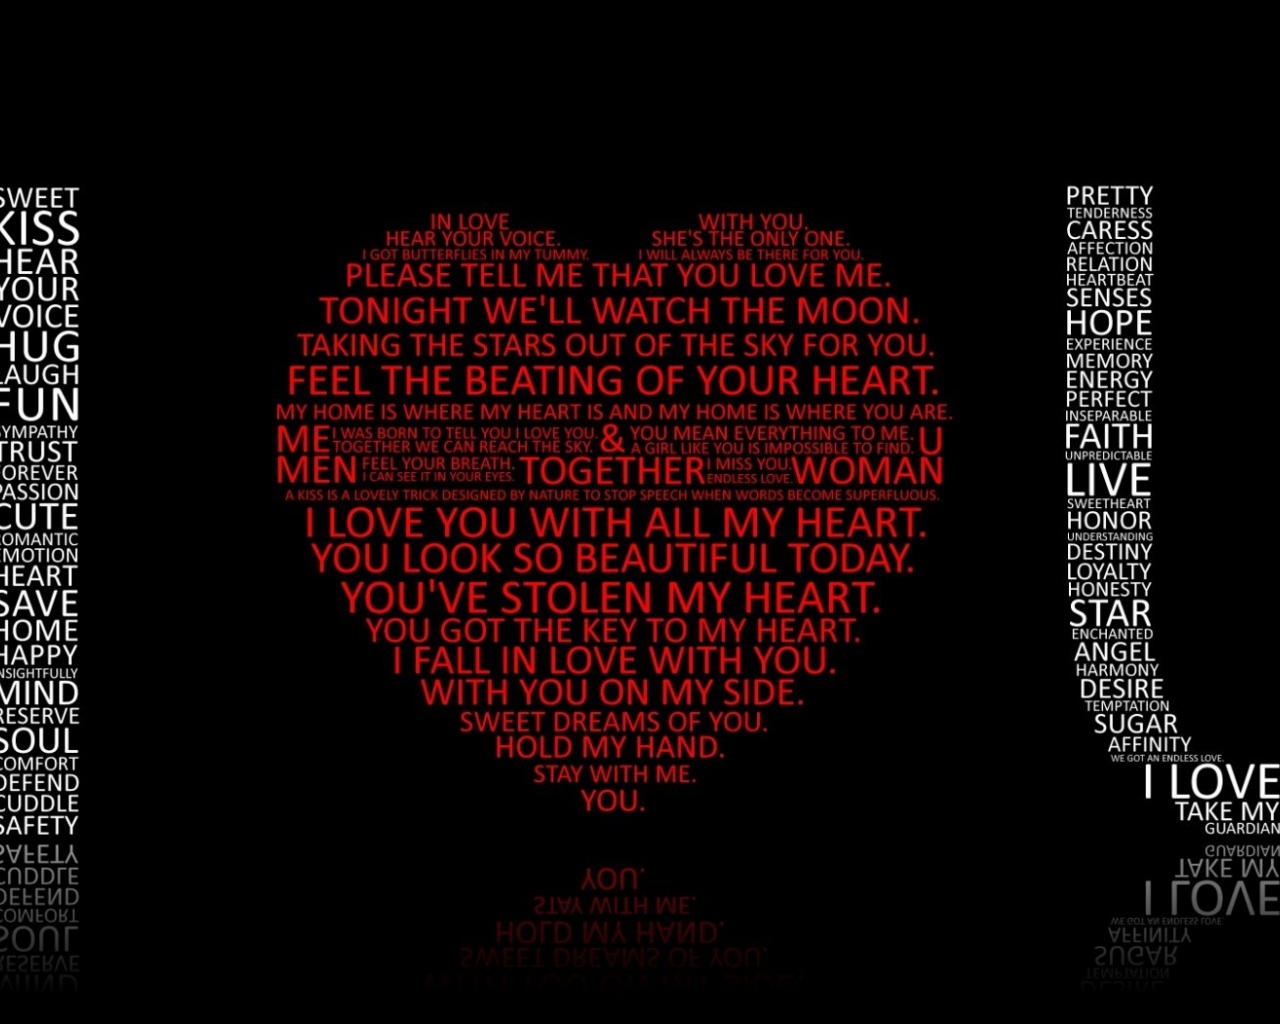 Free Download I Love You Words Hd Wallpaper 1680x1050 For Your